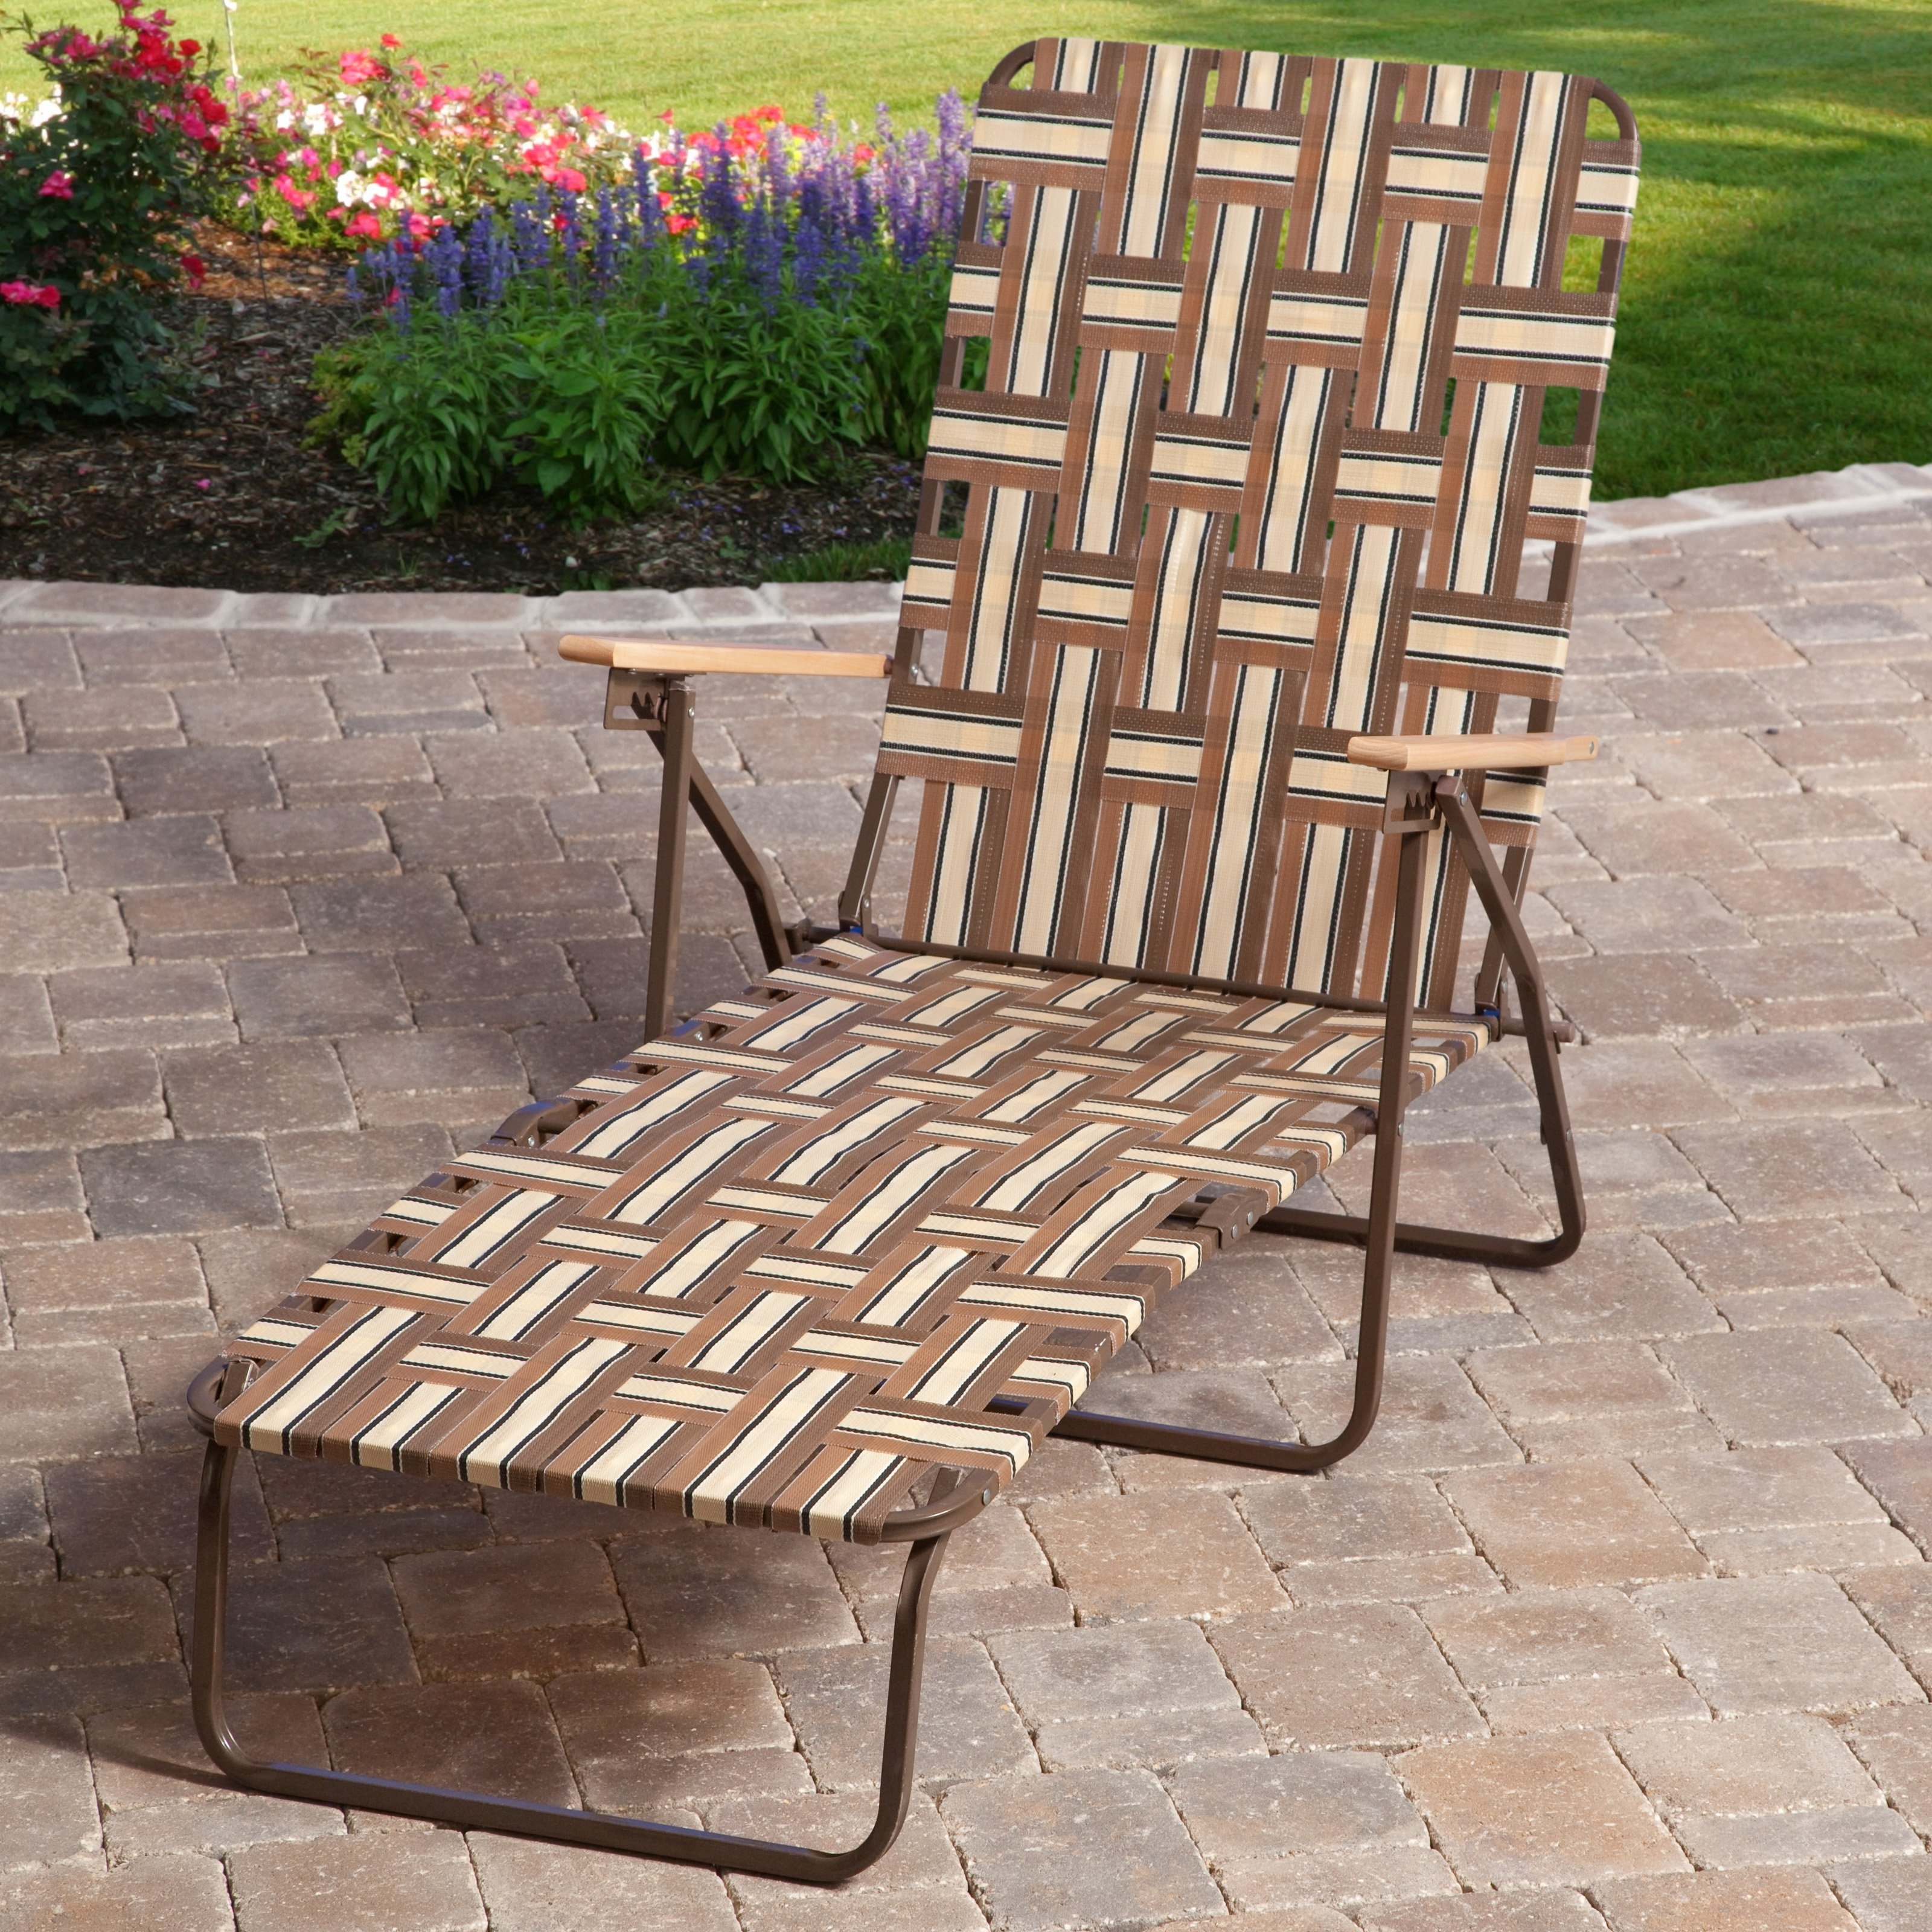 Walmart Outdoor Chaise Lounges With Preferred Rio Deluxe Folding Web Chaise Lounge – Walmart (View 14 of 15)